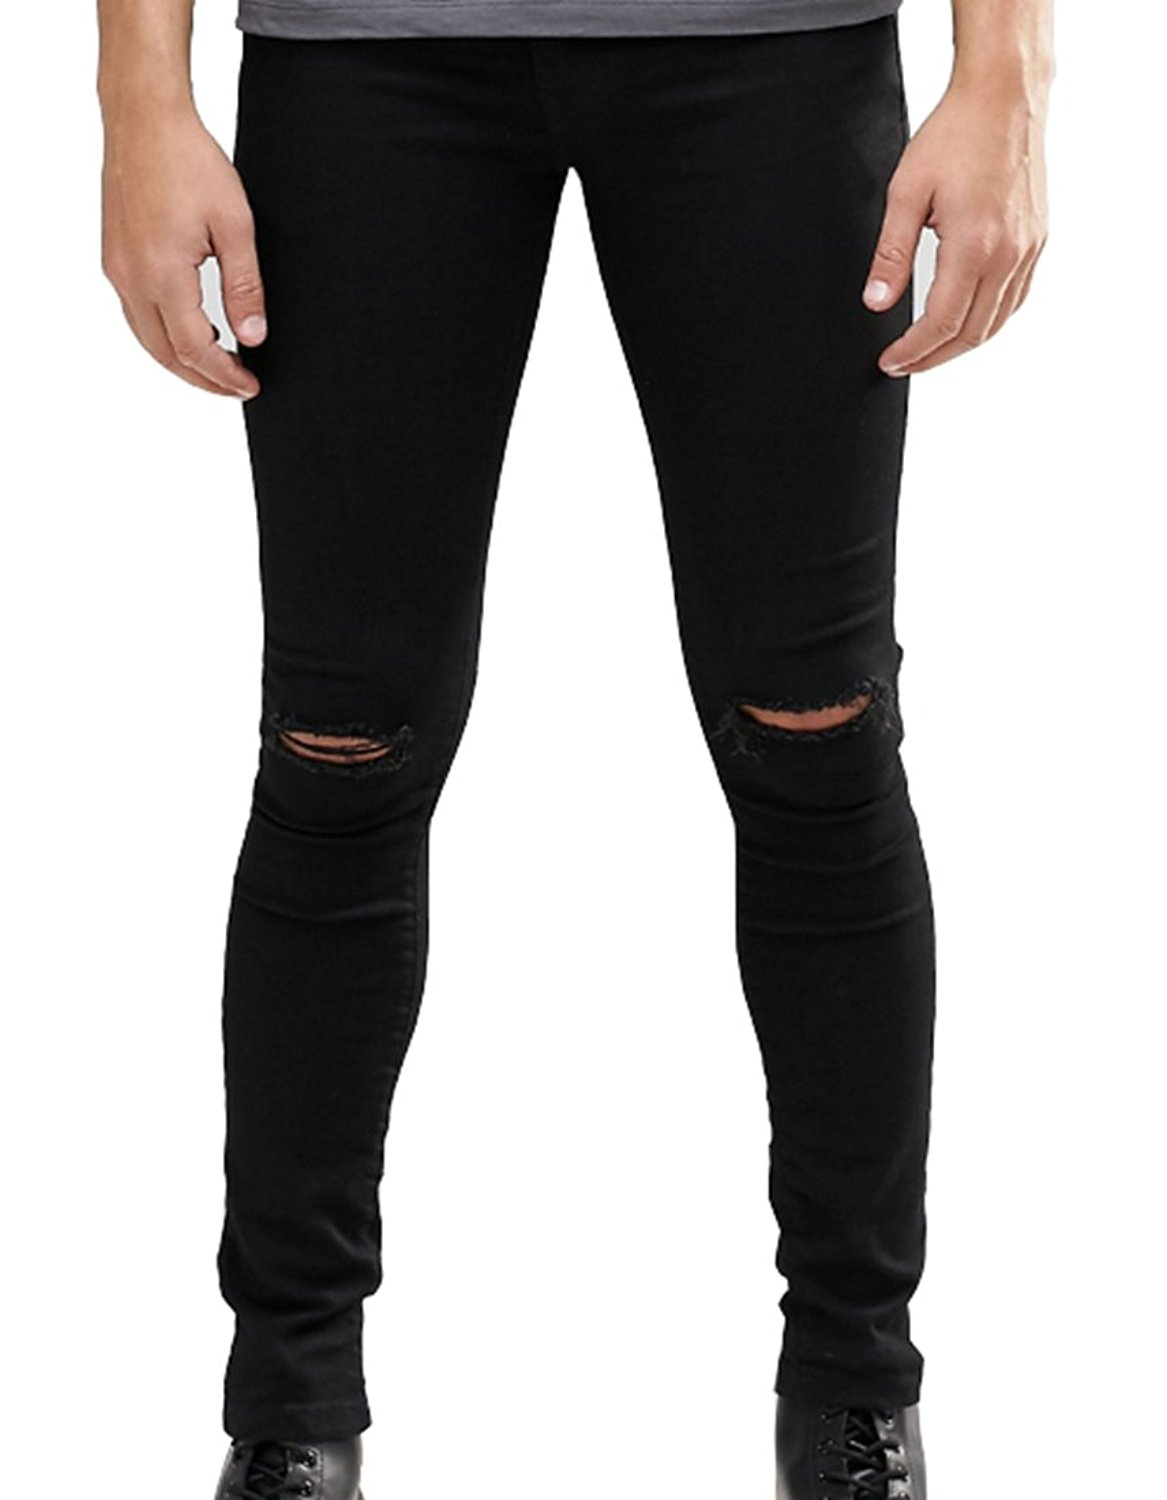 dcfc241752a Get Quotations · Men's Skinny Fit Knees Slit Ripped Jeans Stretch Slim  Denim Pants Black